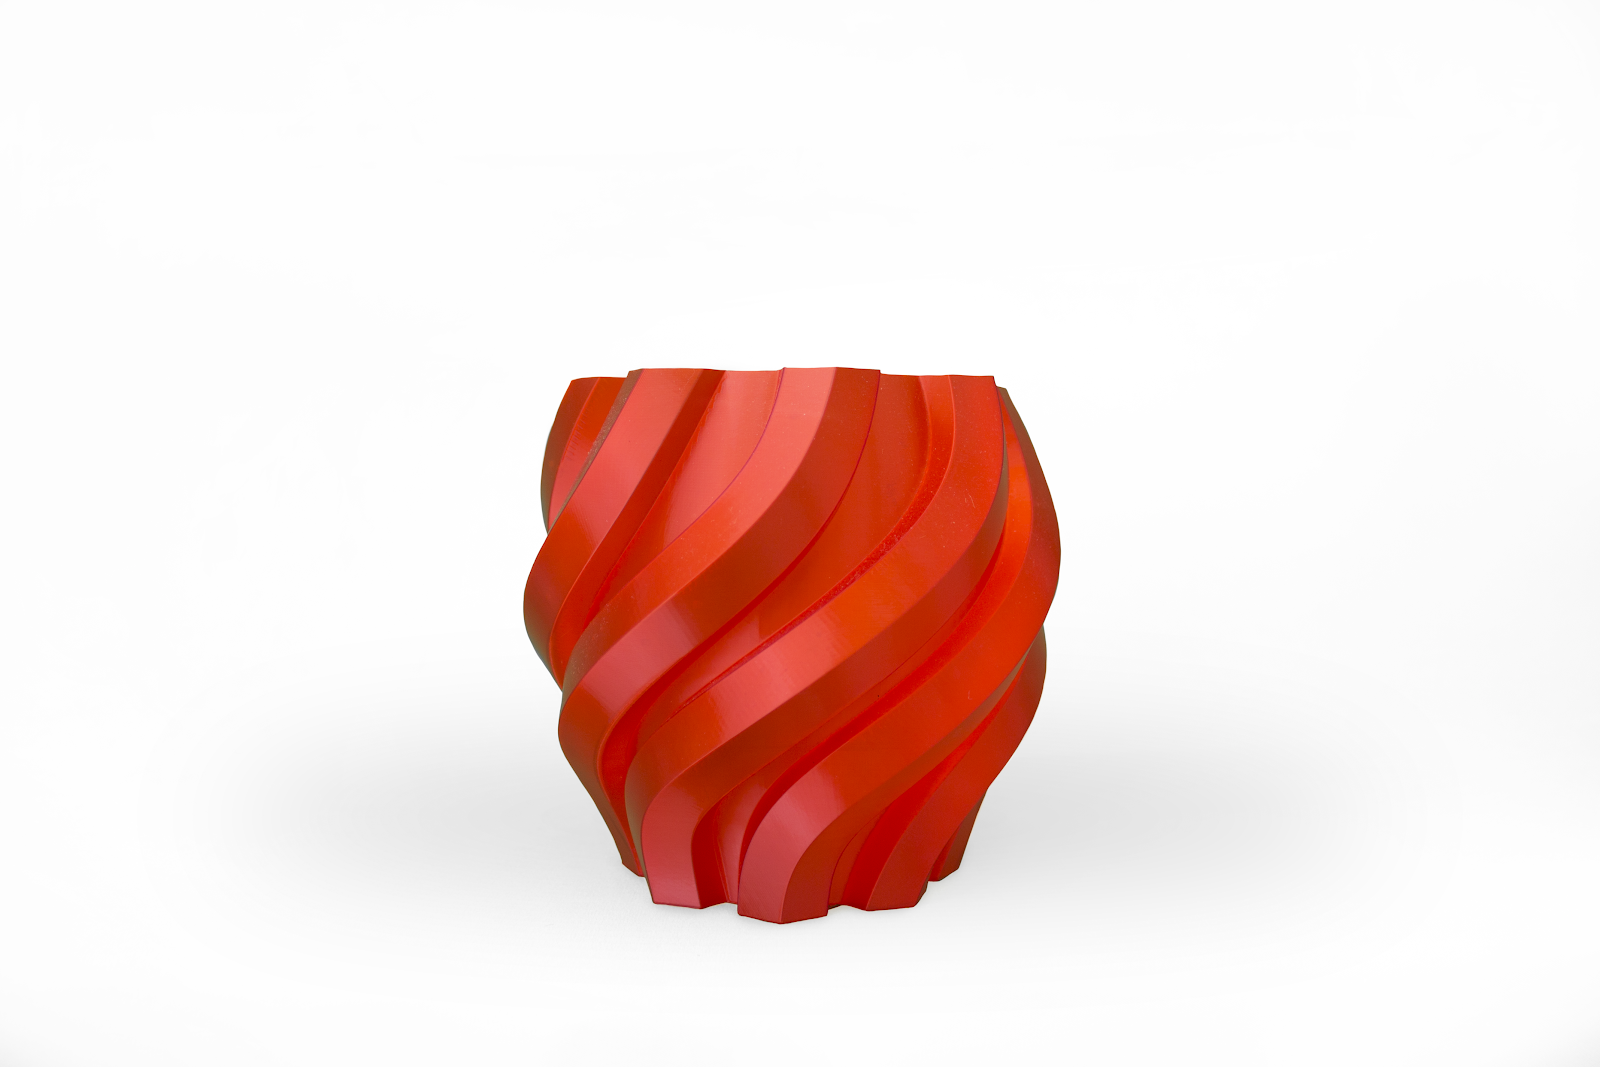 The 3D printed twisted vase.